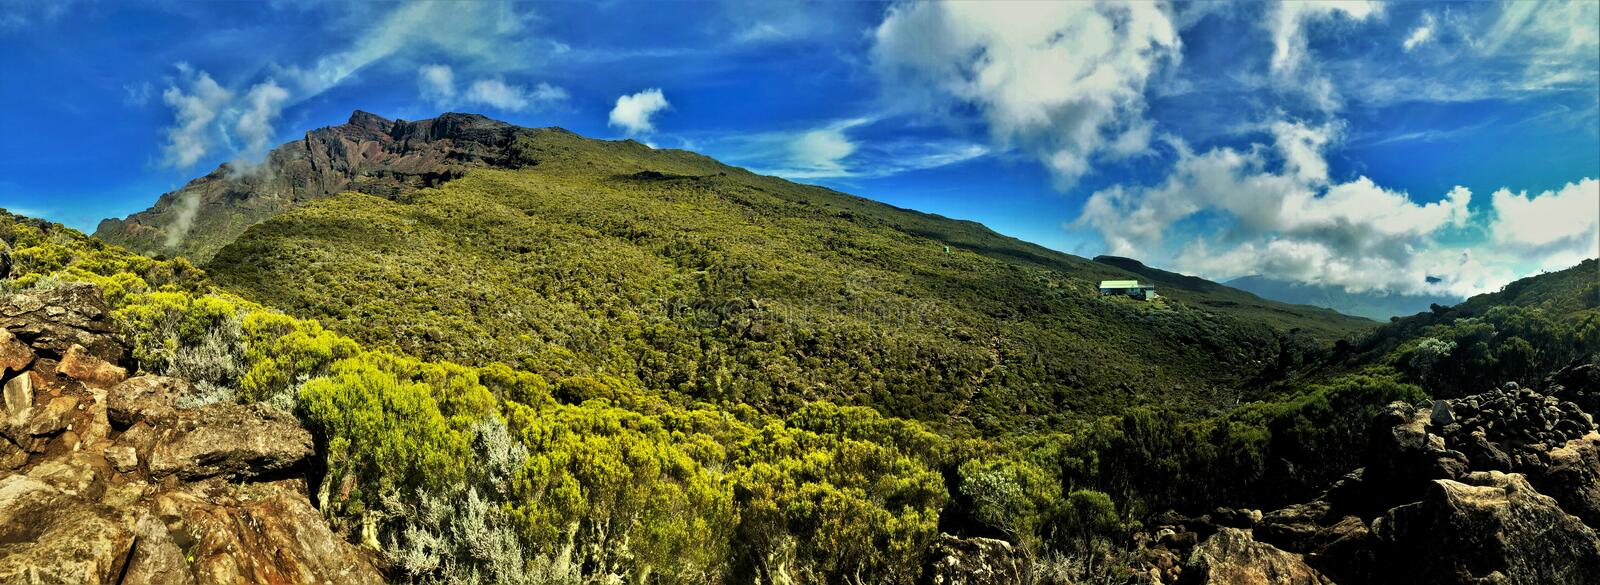 View on piton des neiges on la reunion island royalty free stock image